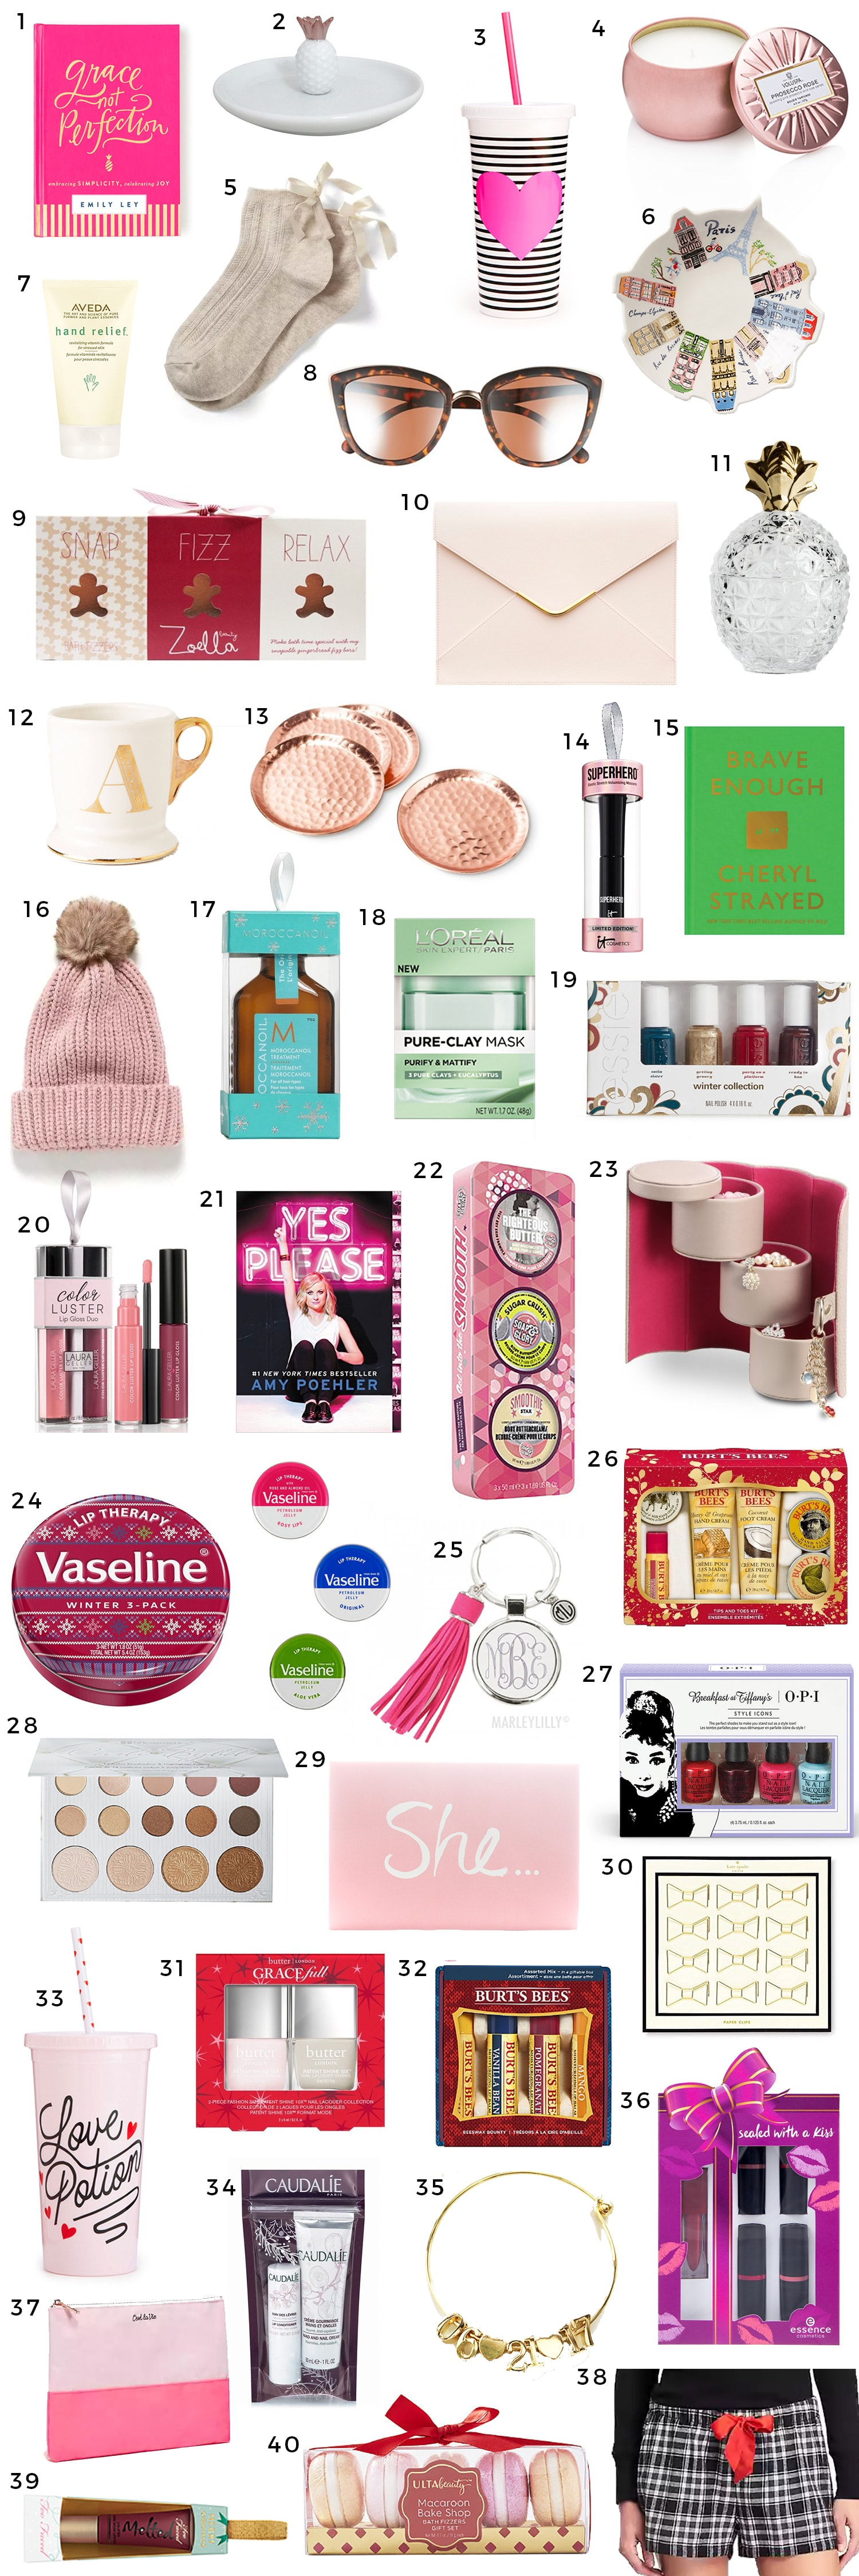 The Best Christmas Gift Ideas for Women Under $15 | Ashley Brooke ...